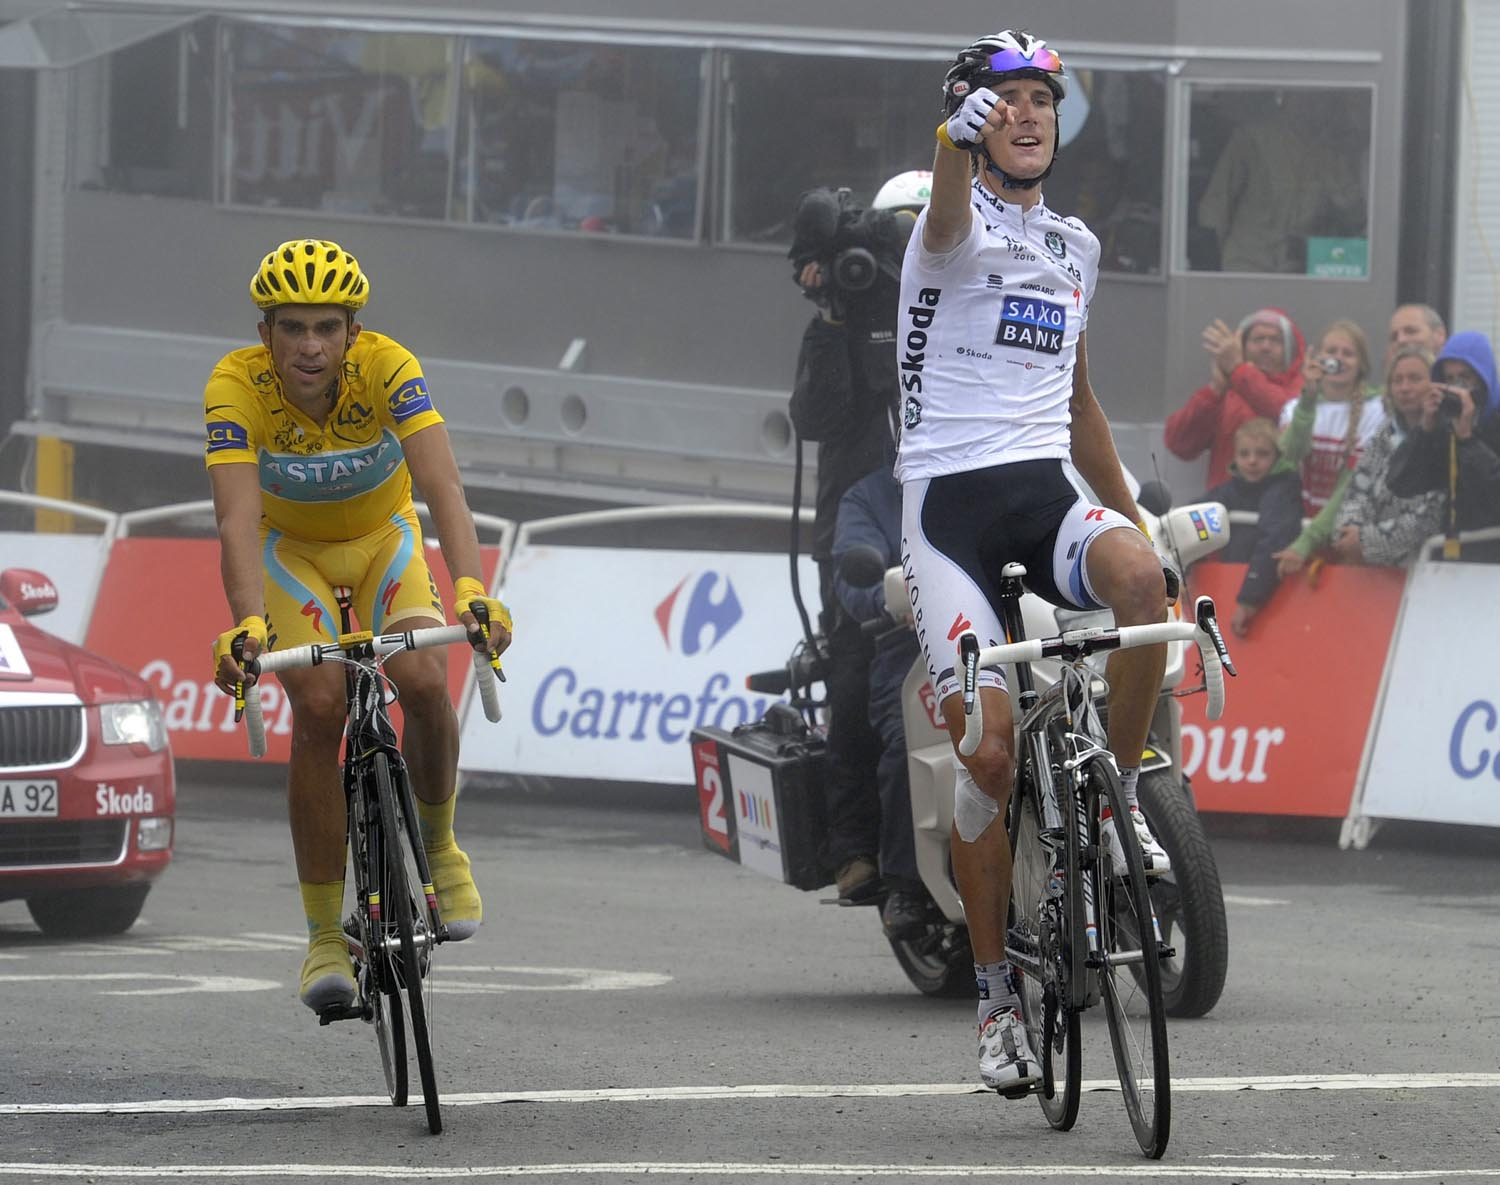 Andy Schleck wins, Tour de France 2010, stage 17